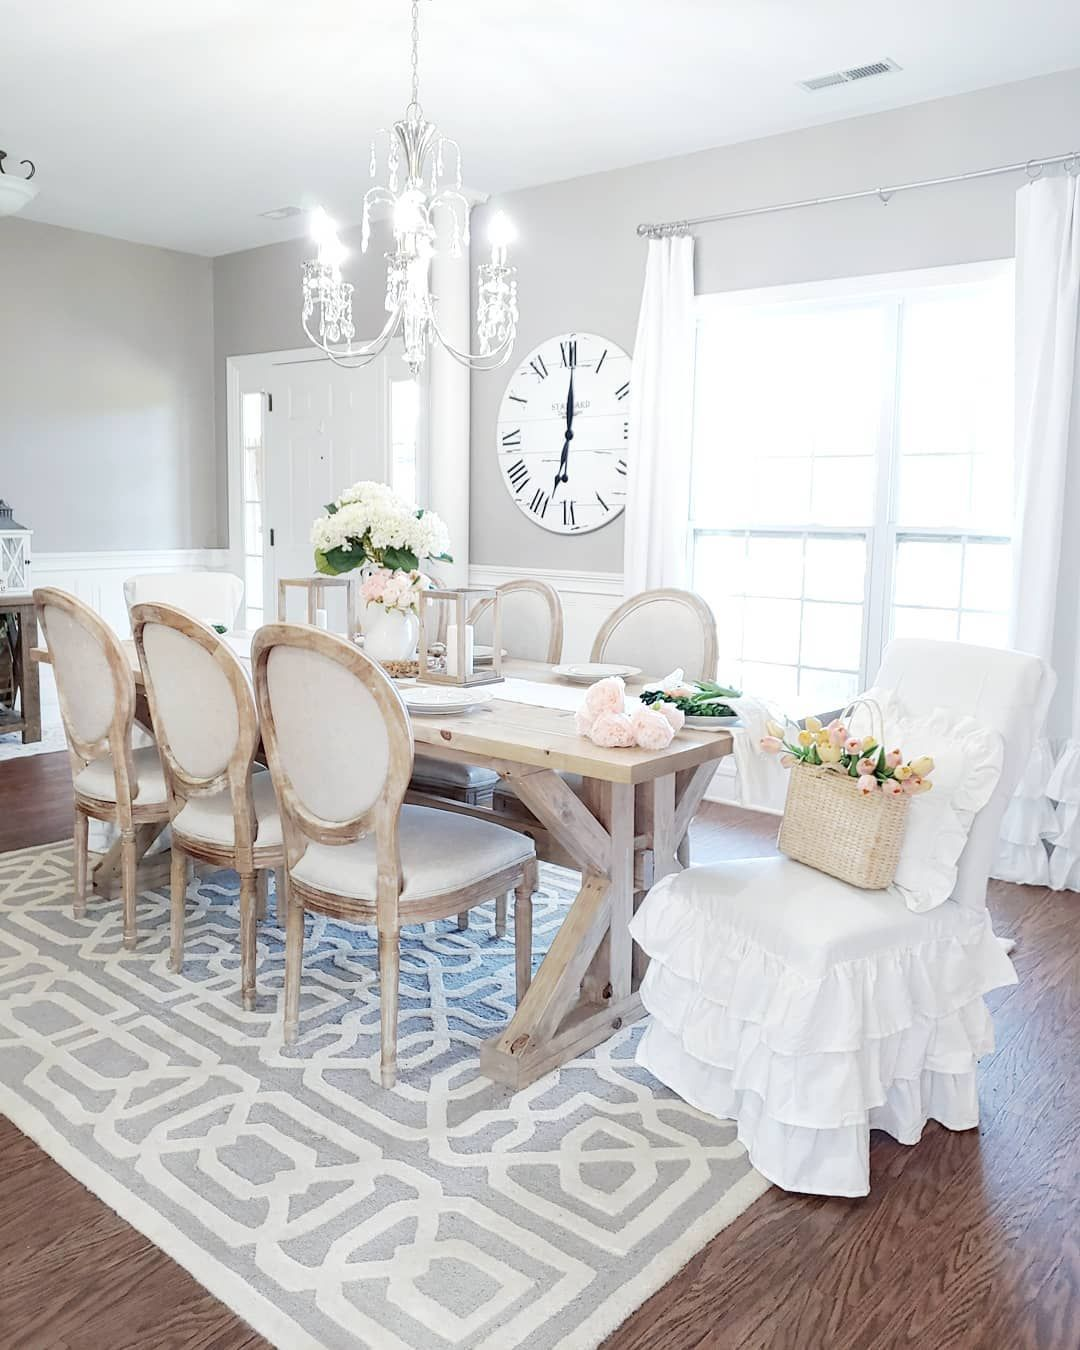 3 Charming French Country Dining Rooms In 2020 French Country Dining Room Country Dining Rooms Dining Room French